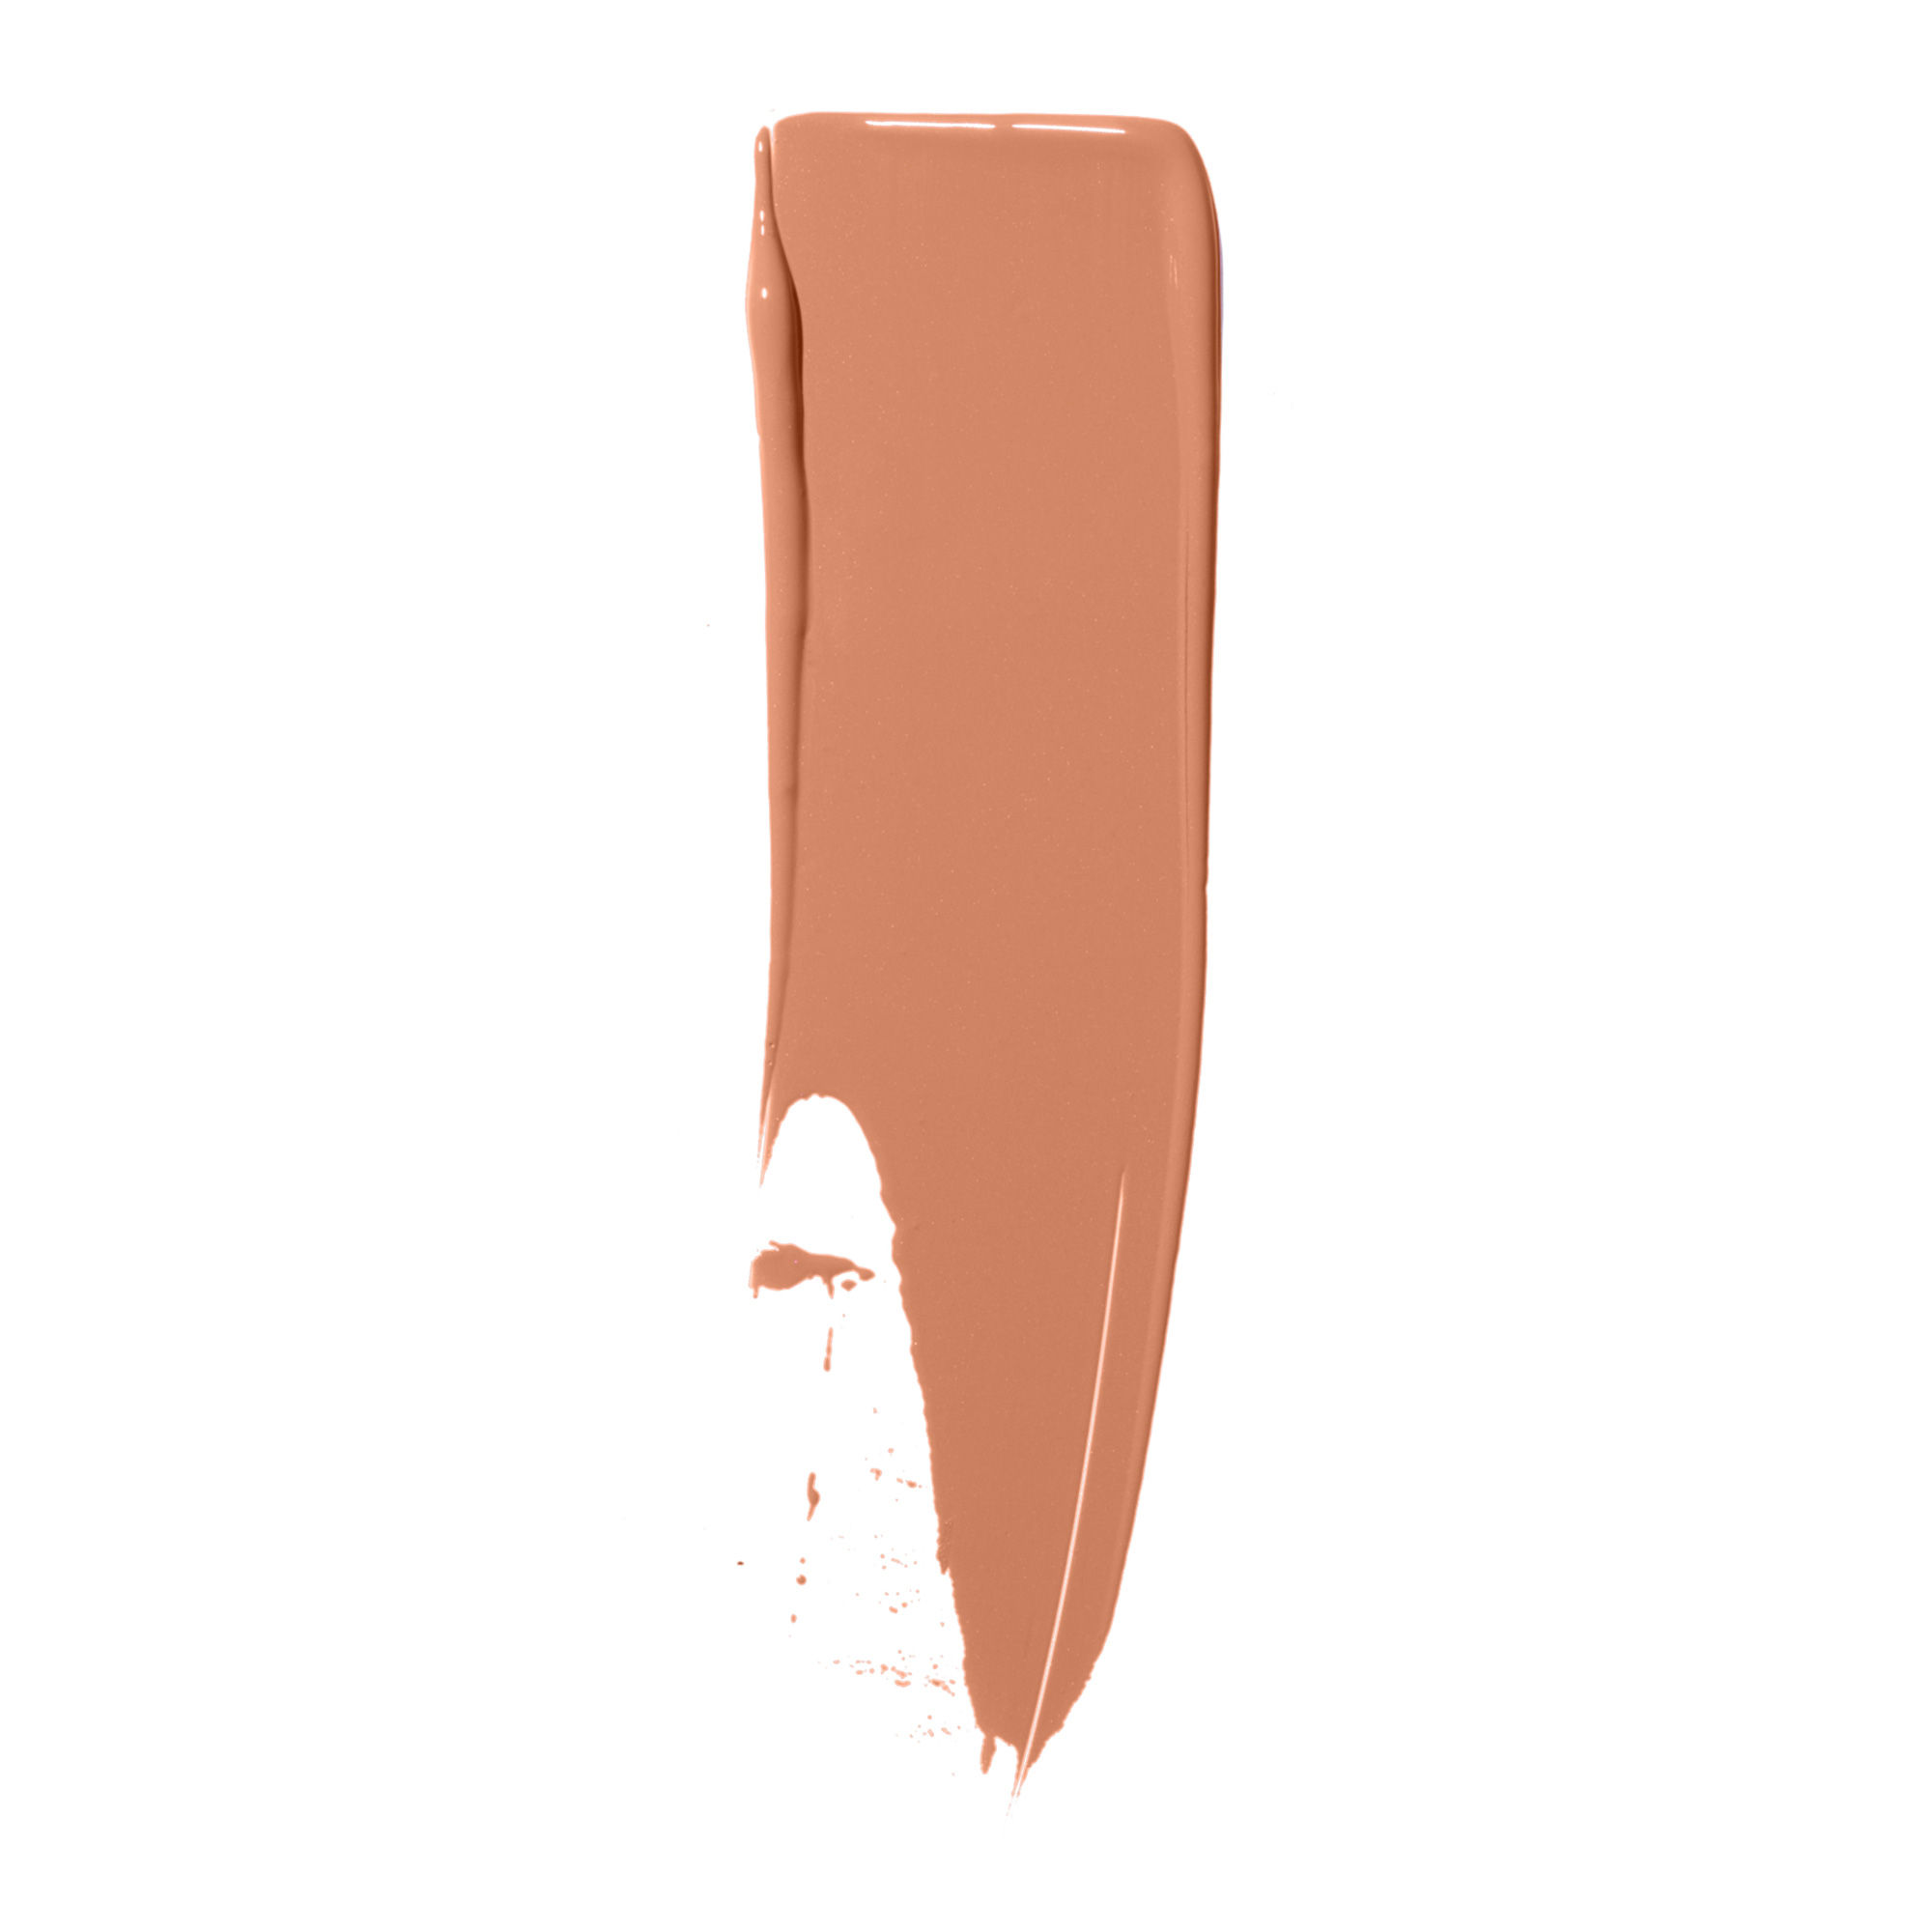 Cream Finish - Nylon Nude - Peachy Nude